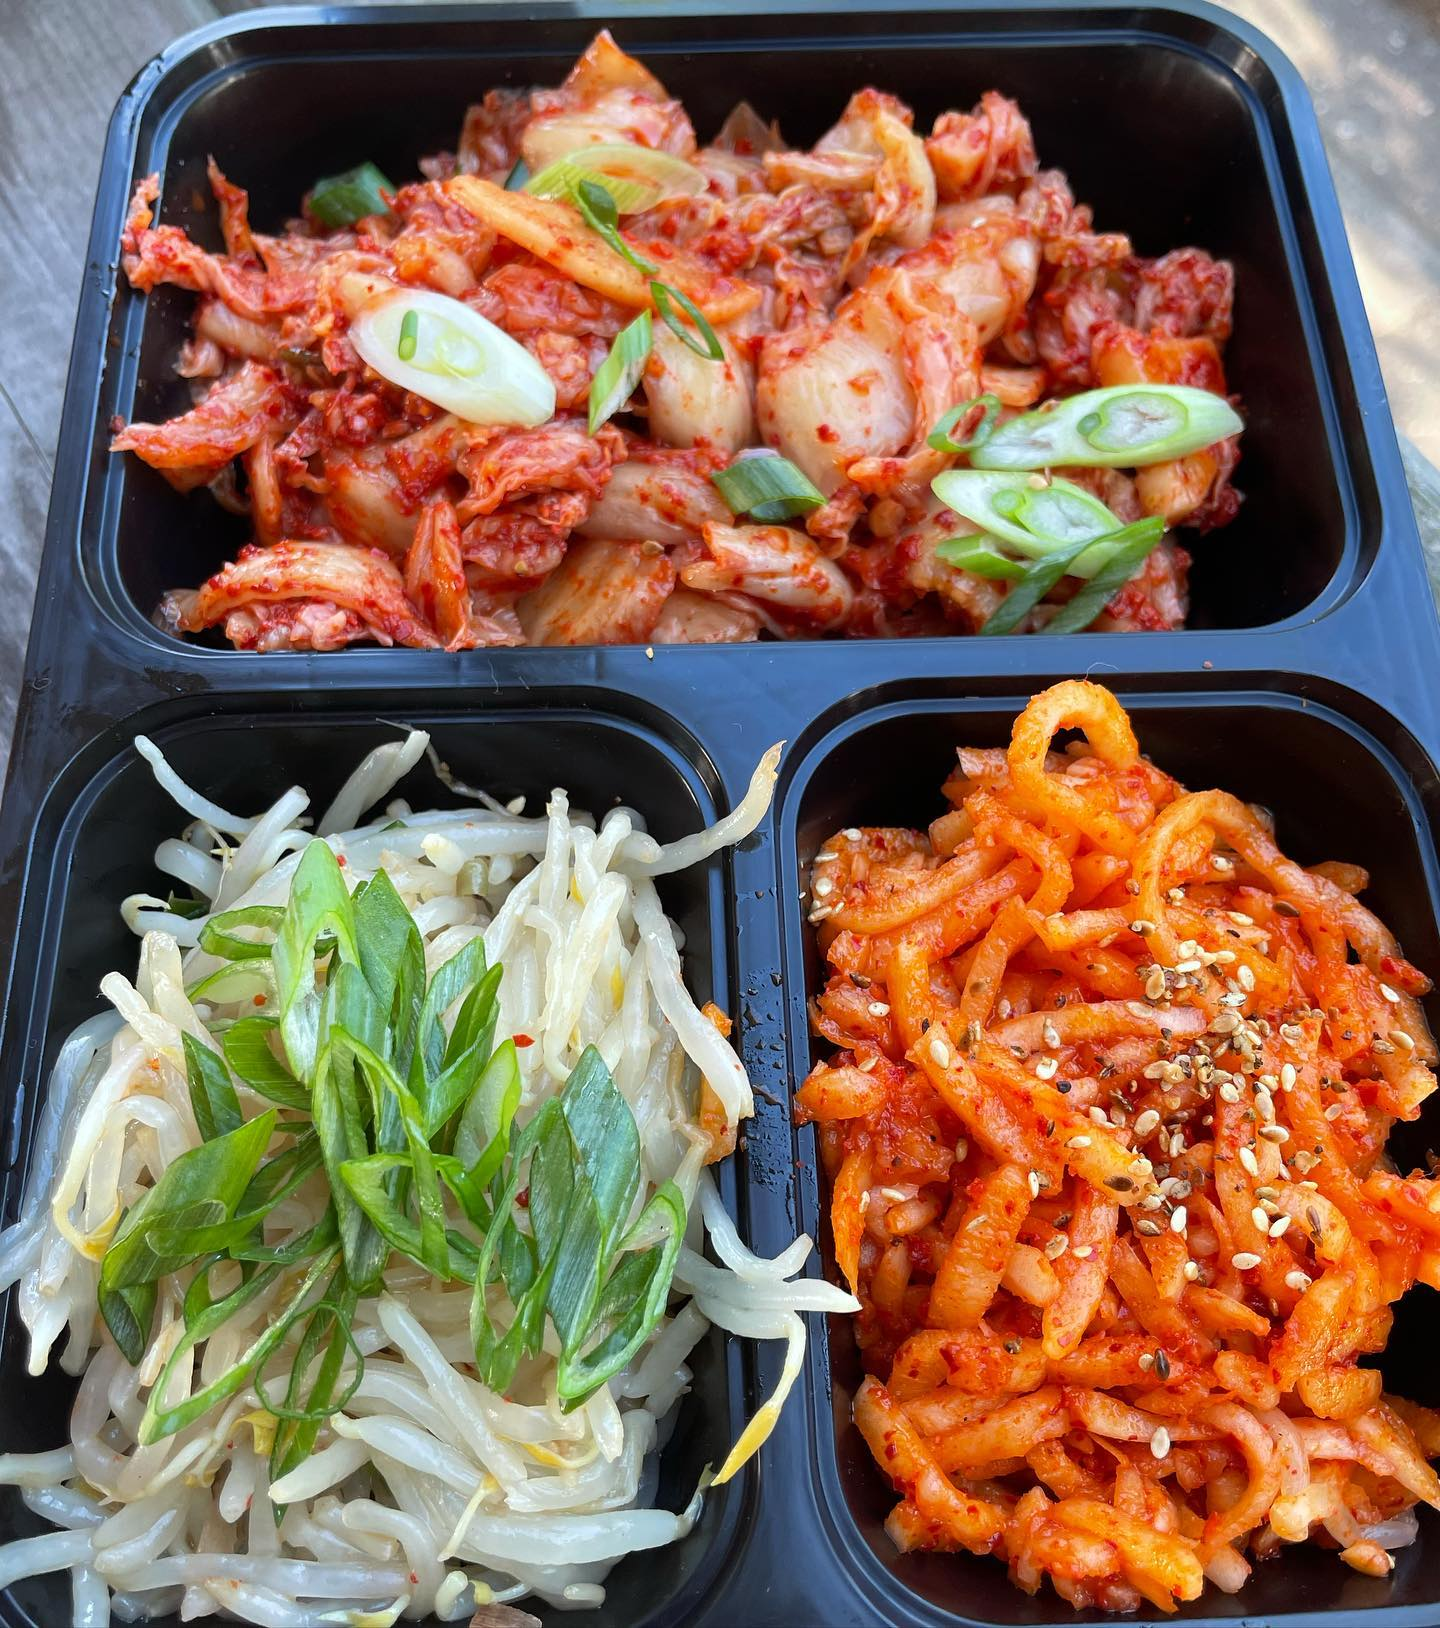 A takeout container filled with kimchi and marinated meats.